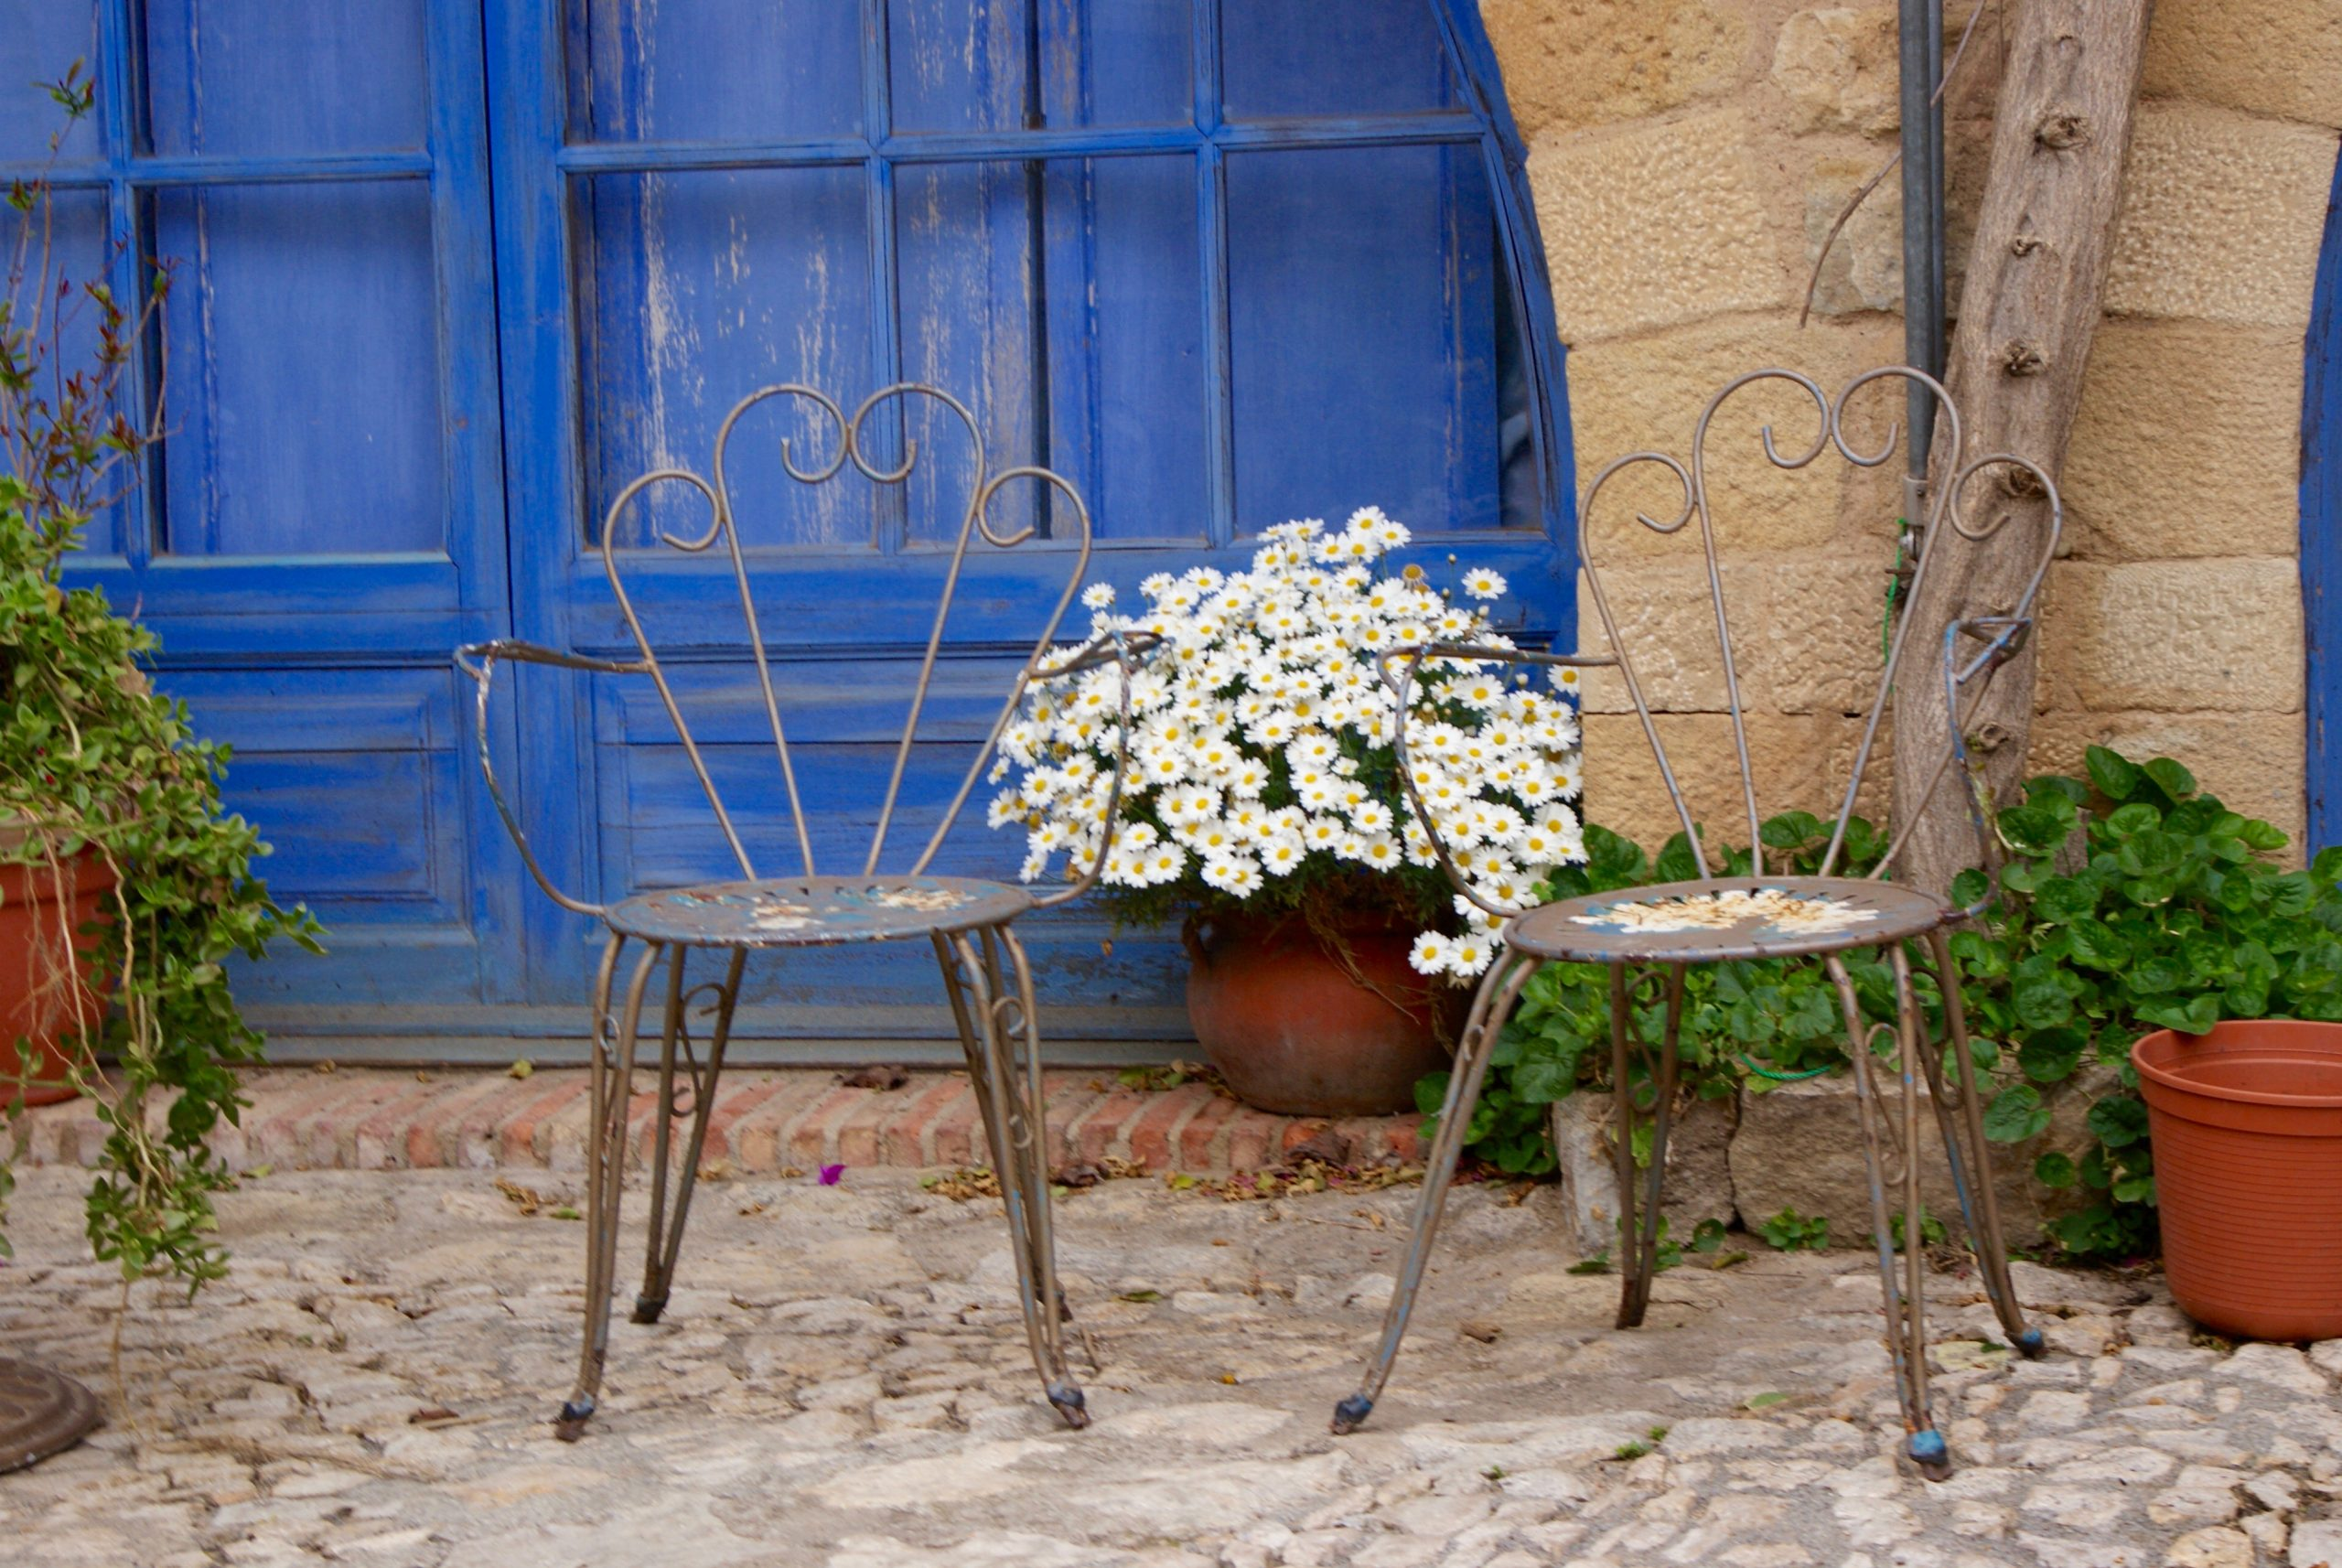 street setting in Spain with two chairs, flowers pots on cobblestone street